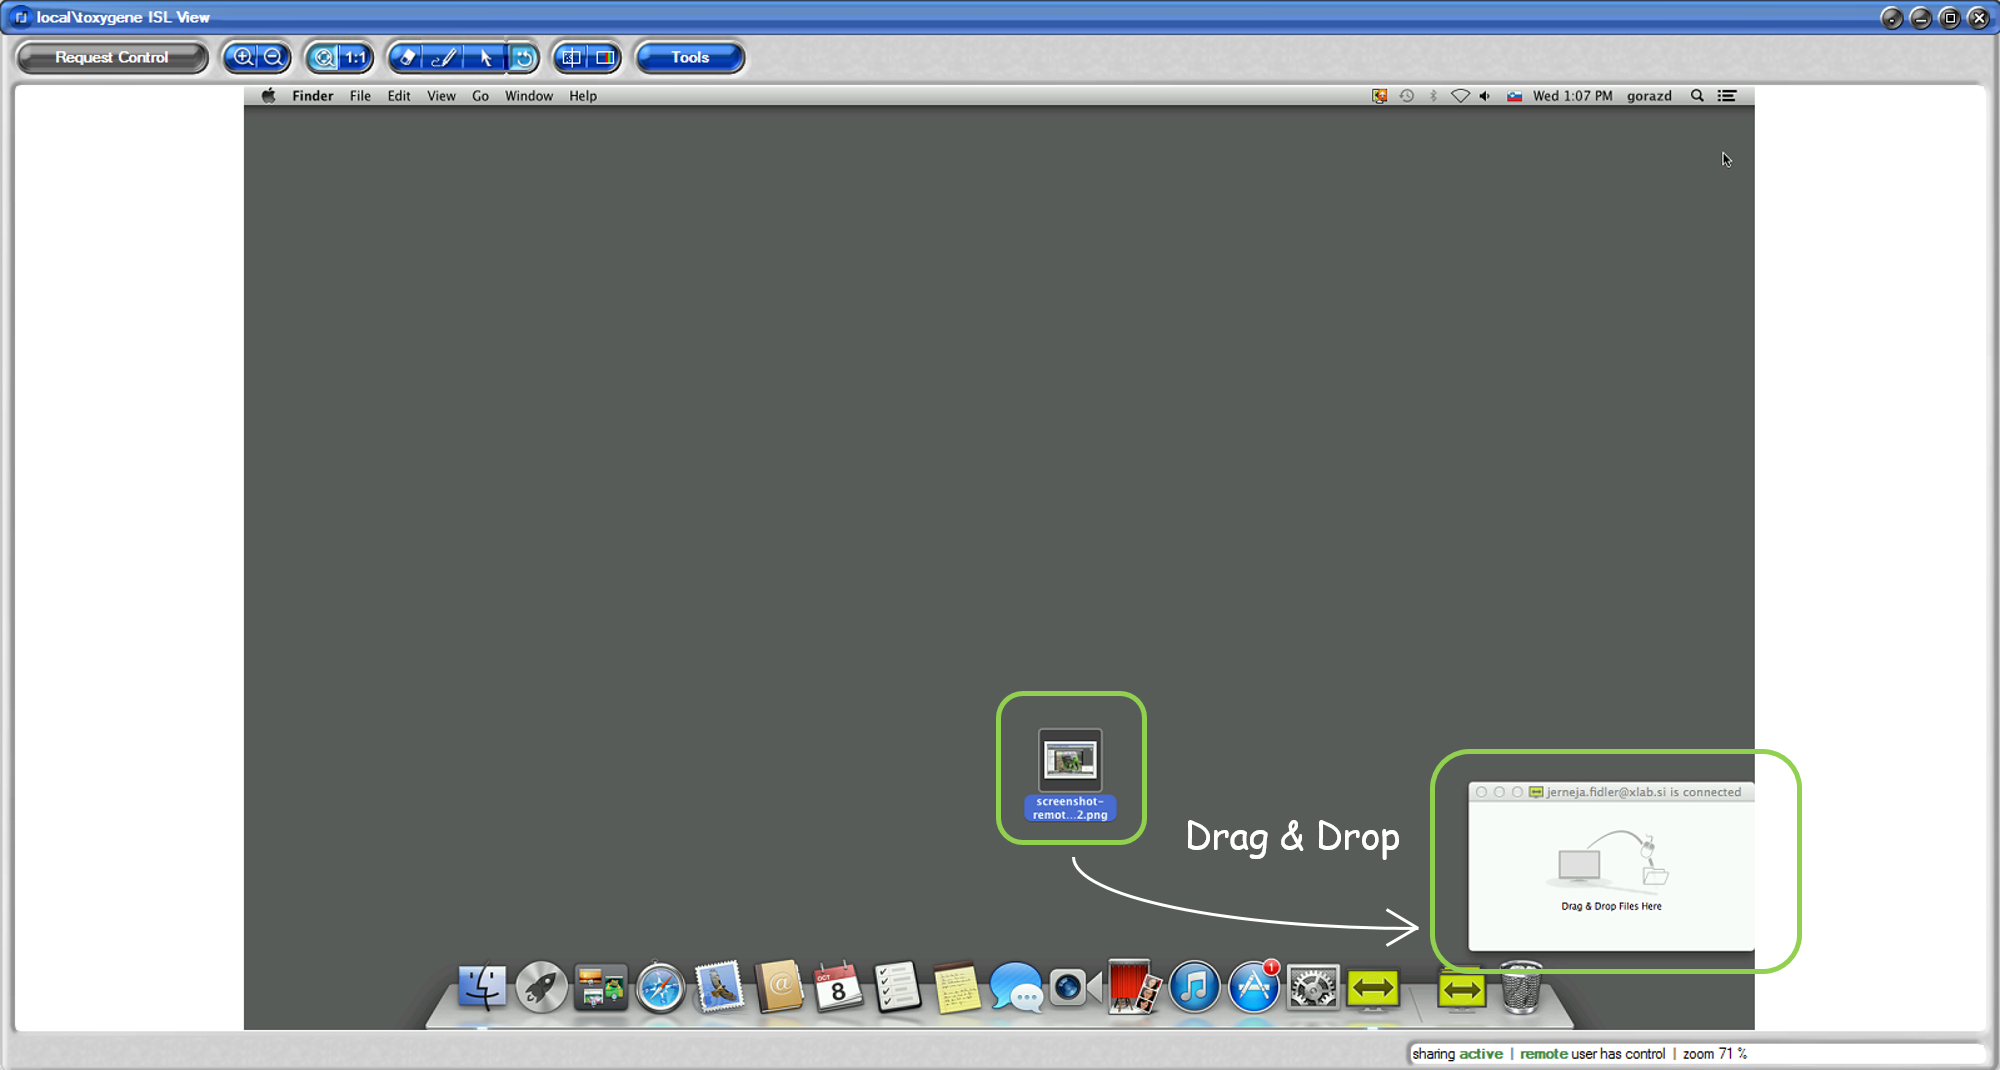 Islonline Mac Dragdrop Filetransfer